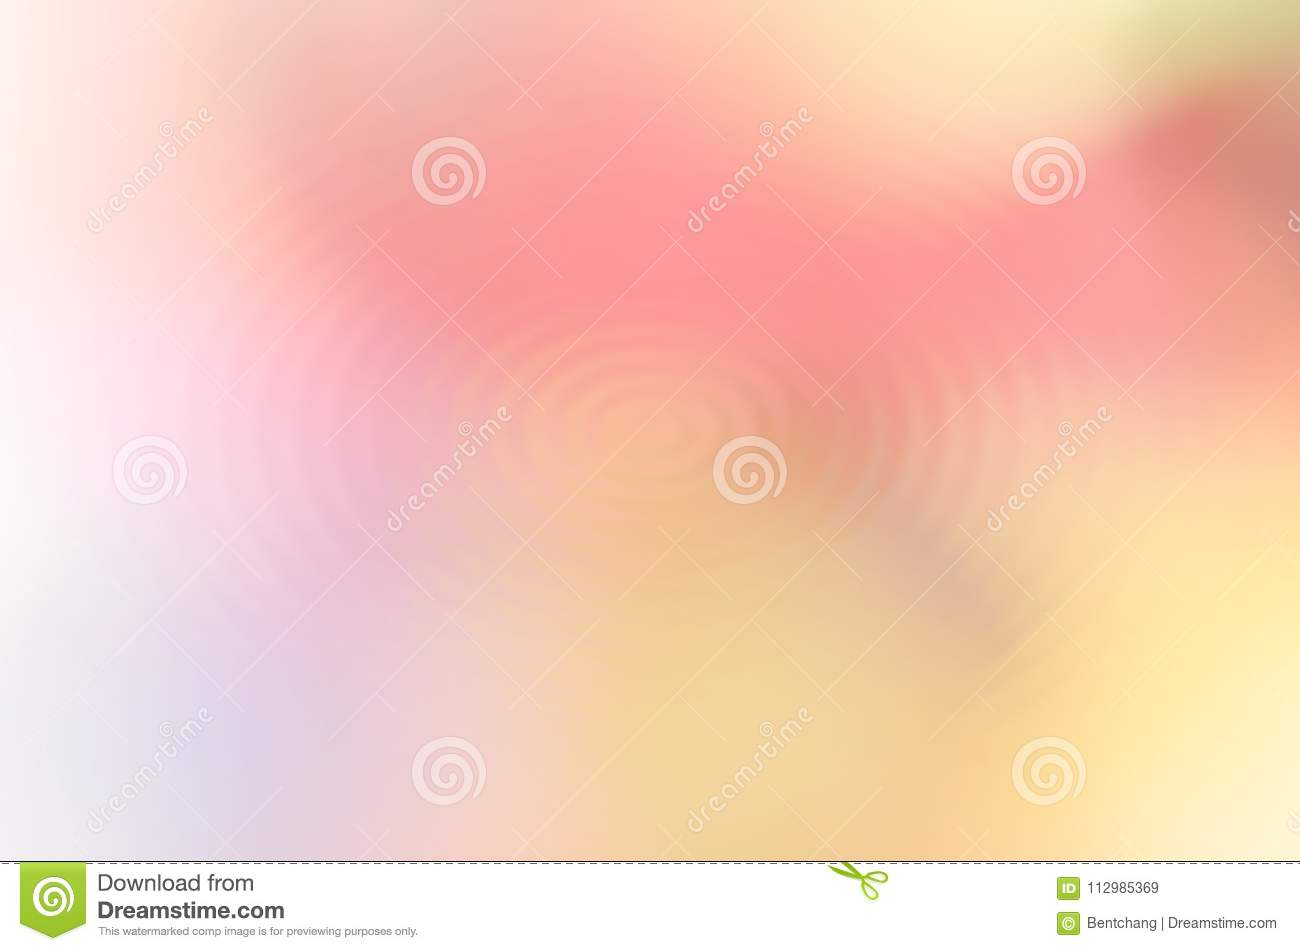 Abstract motion illustrations background. Blur, close-up, colorful, ripple & backdrop.